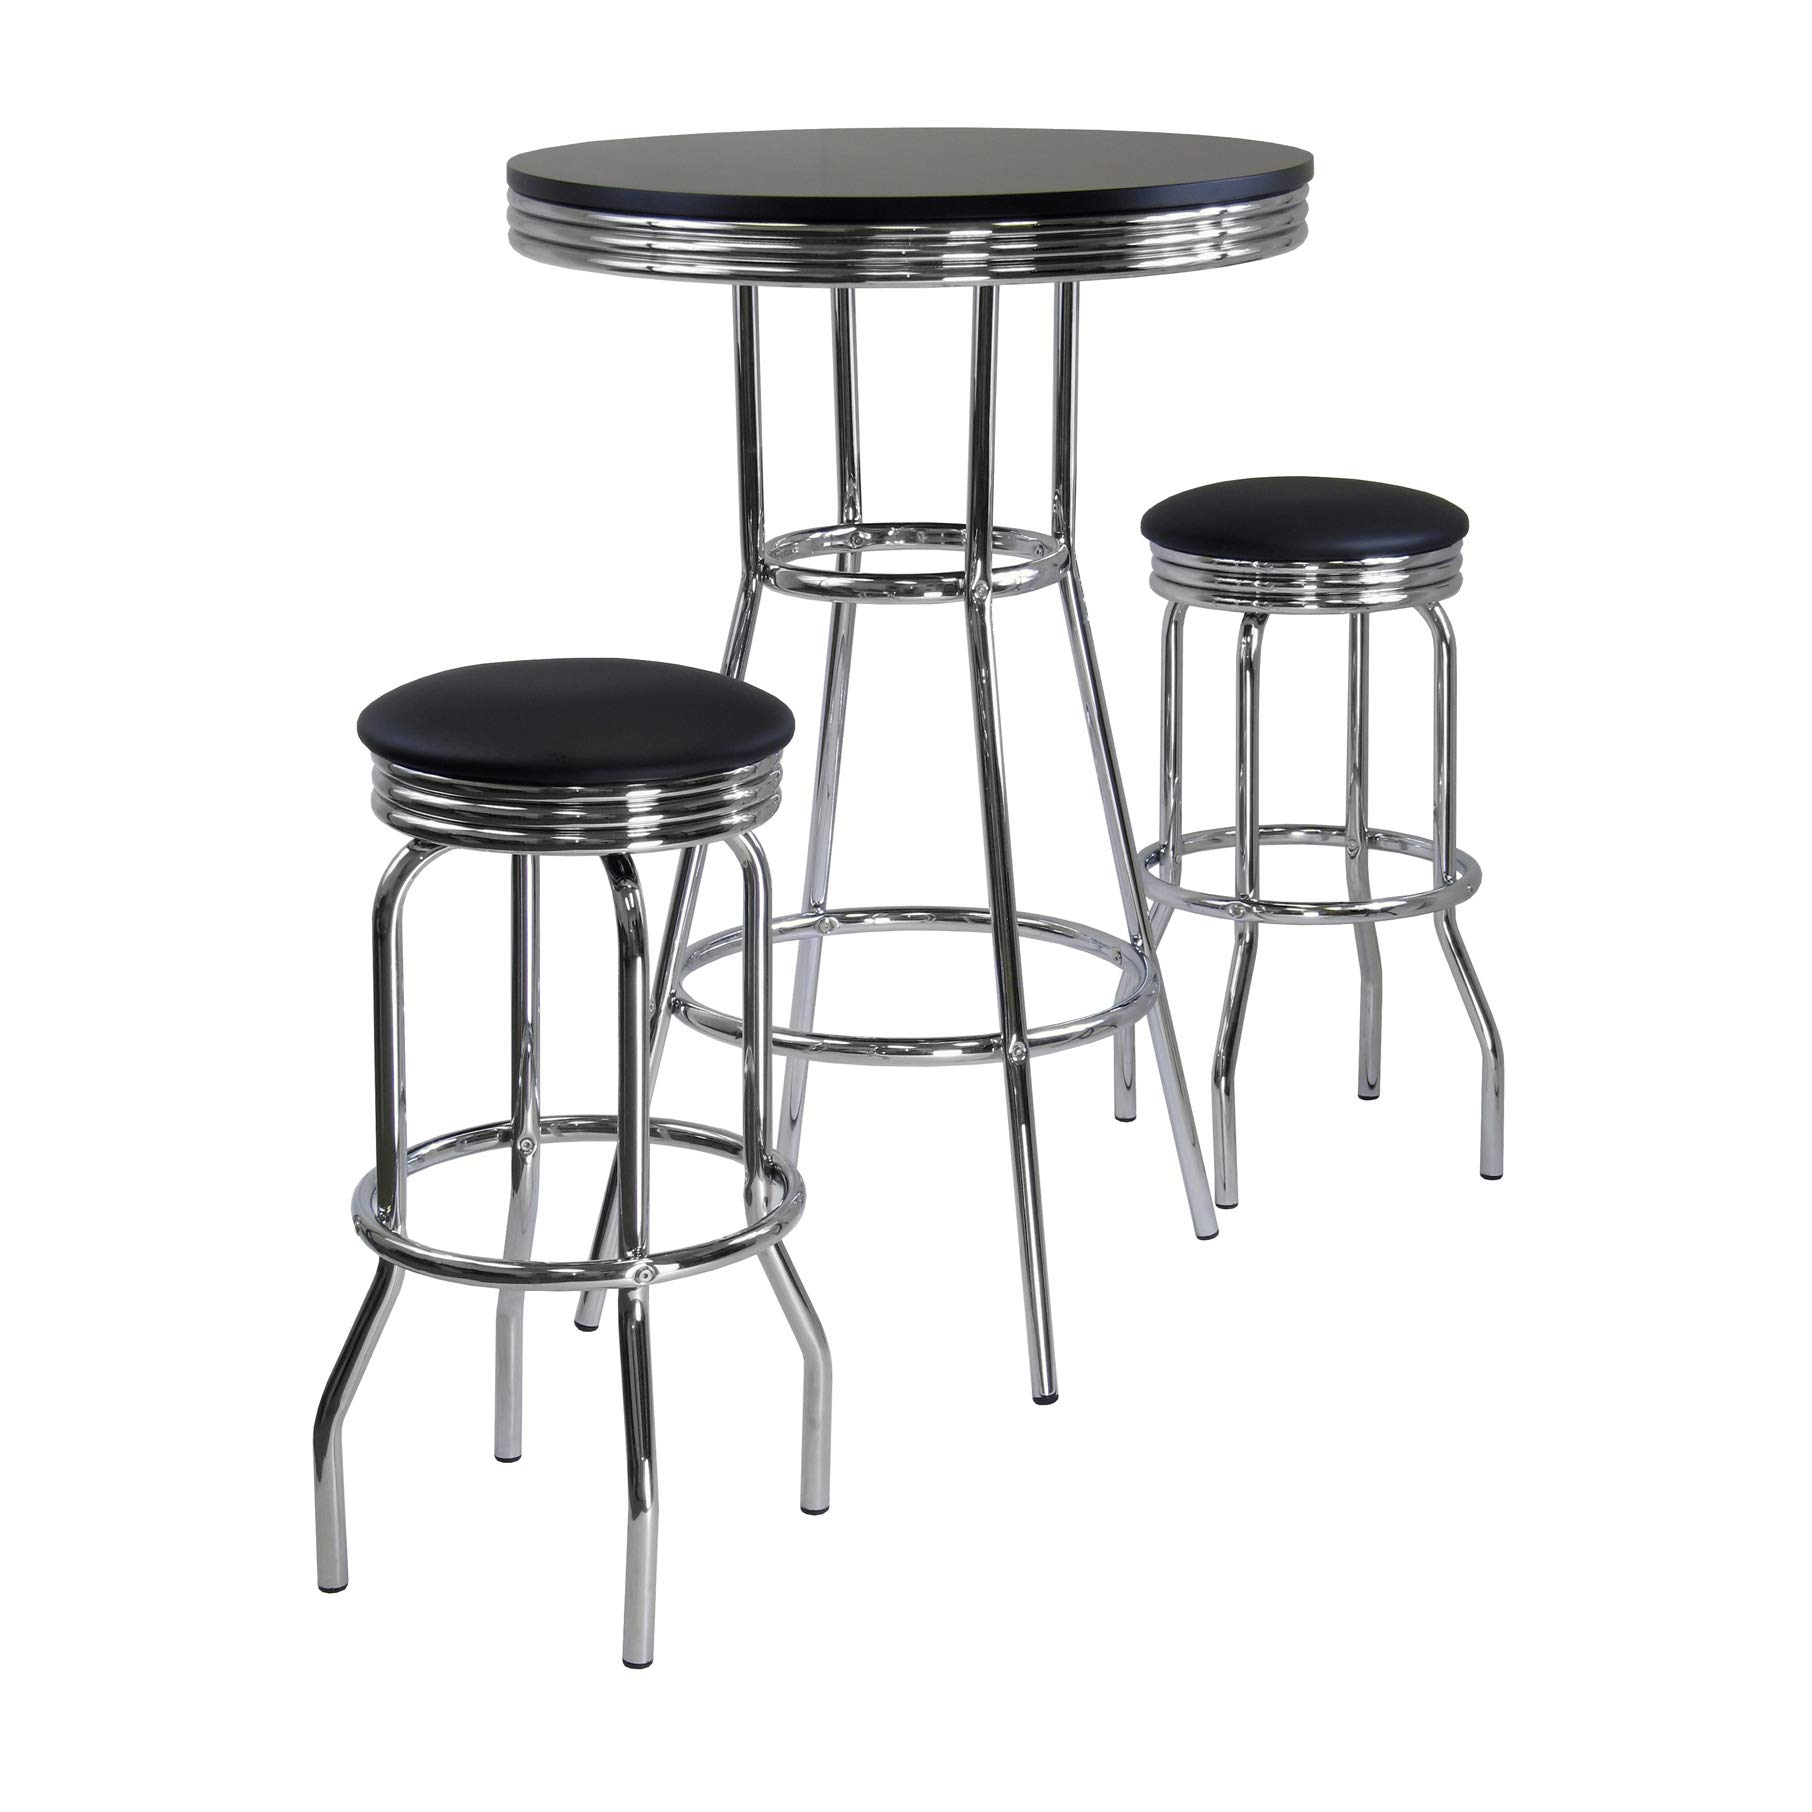 Winsome Summit Pub Table and 2 Swivel Stool Set, 3-Piece by Winsome